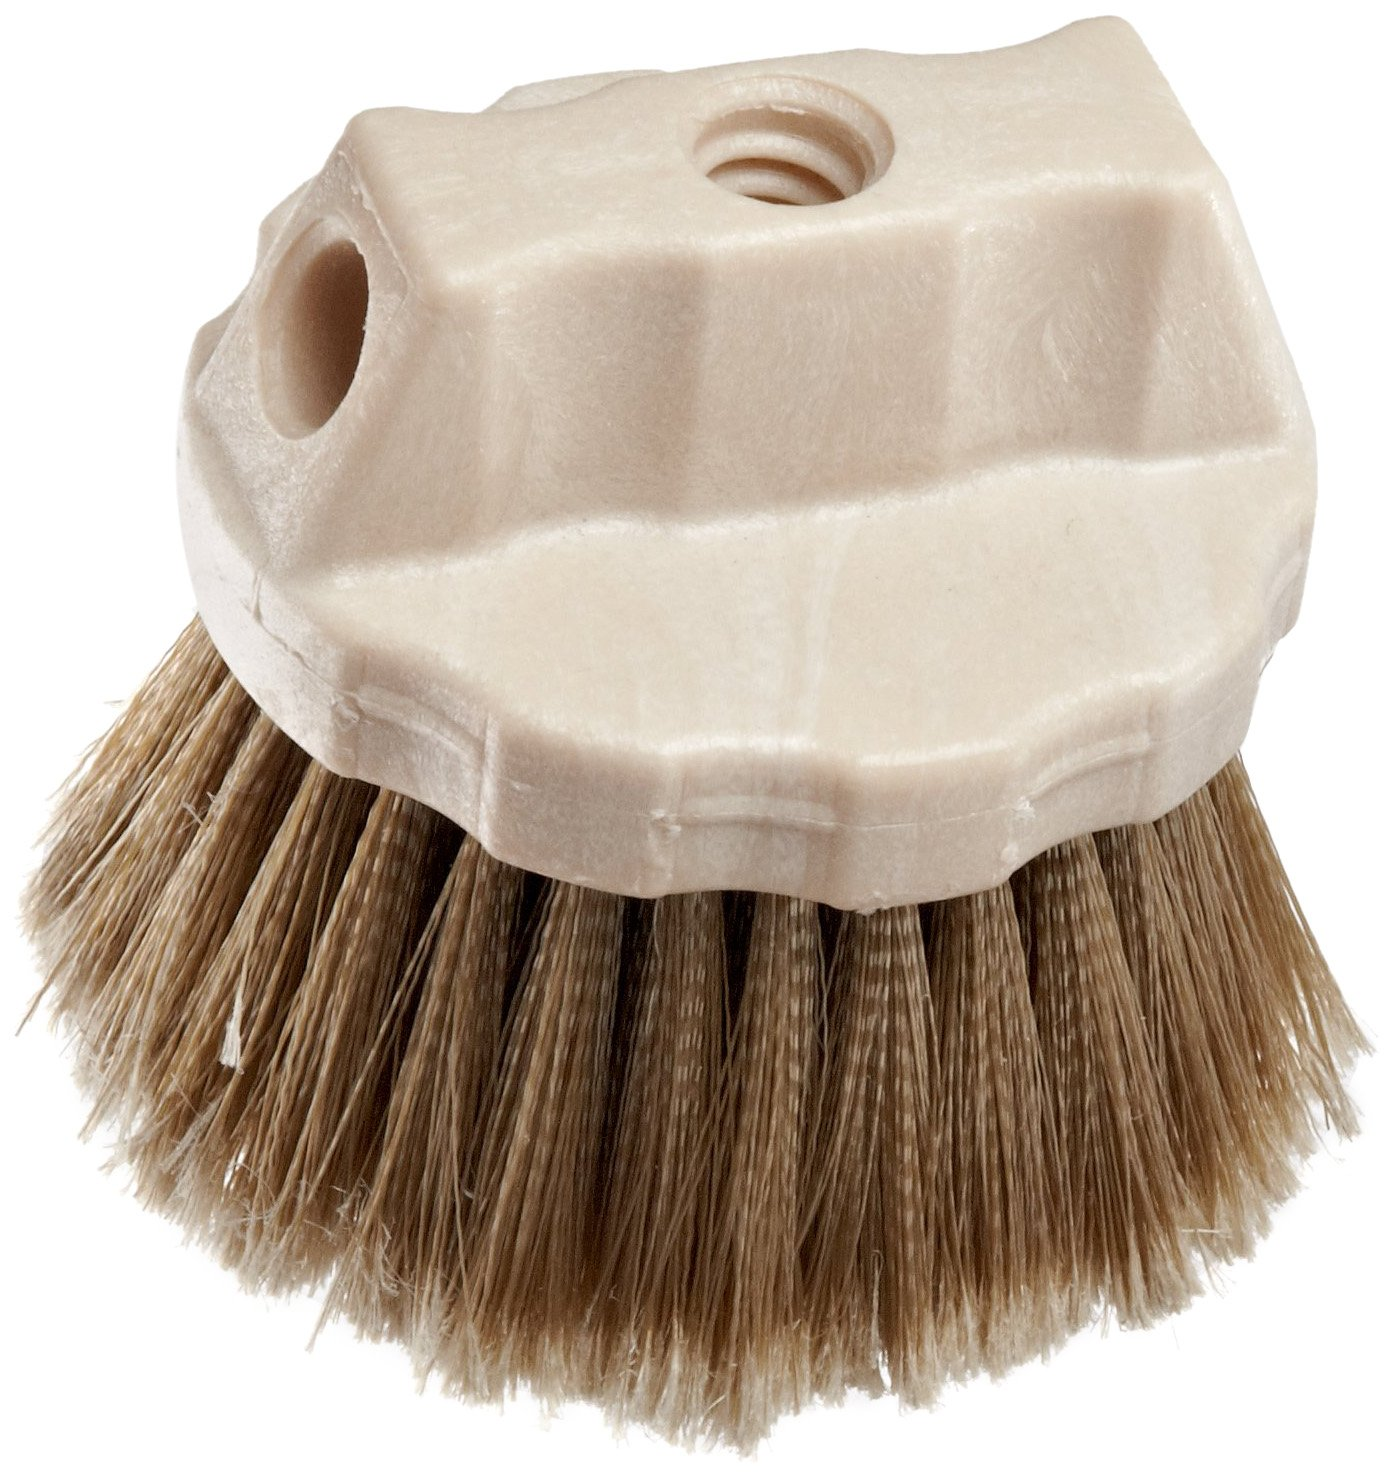 Weiler 25271 Polystyrene Round Window Brush, 4-1/2'' Overall Length, Natural by Weiler